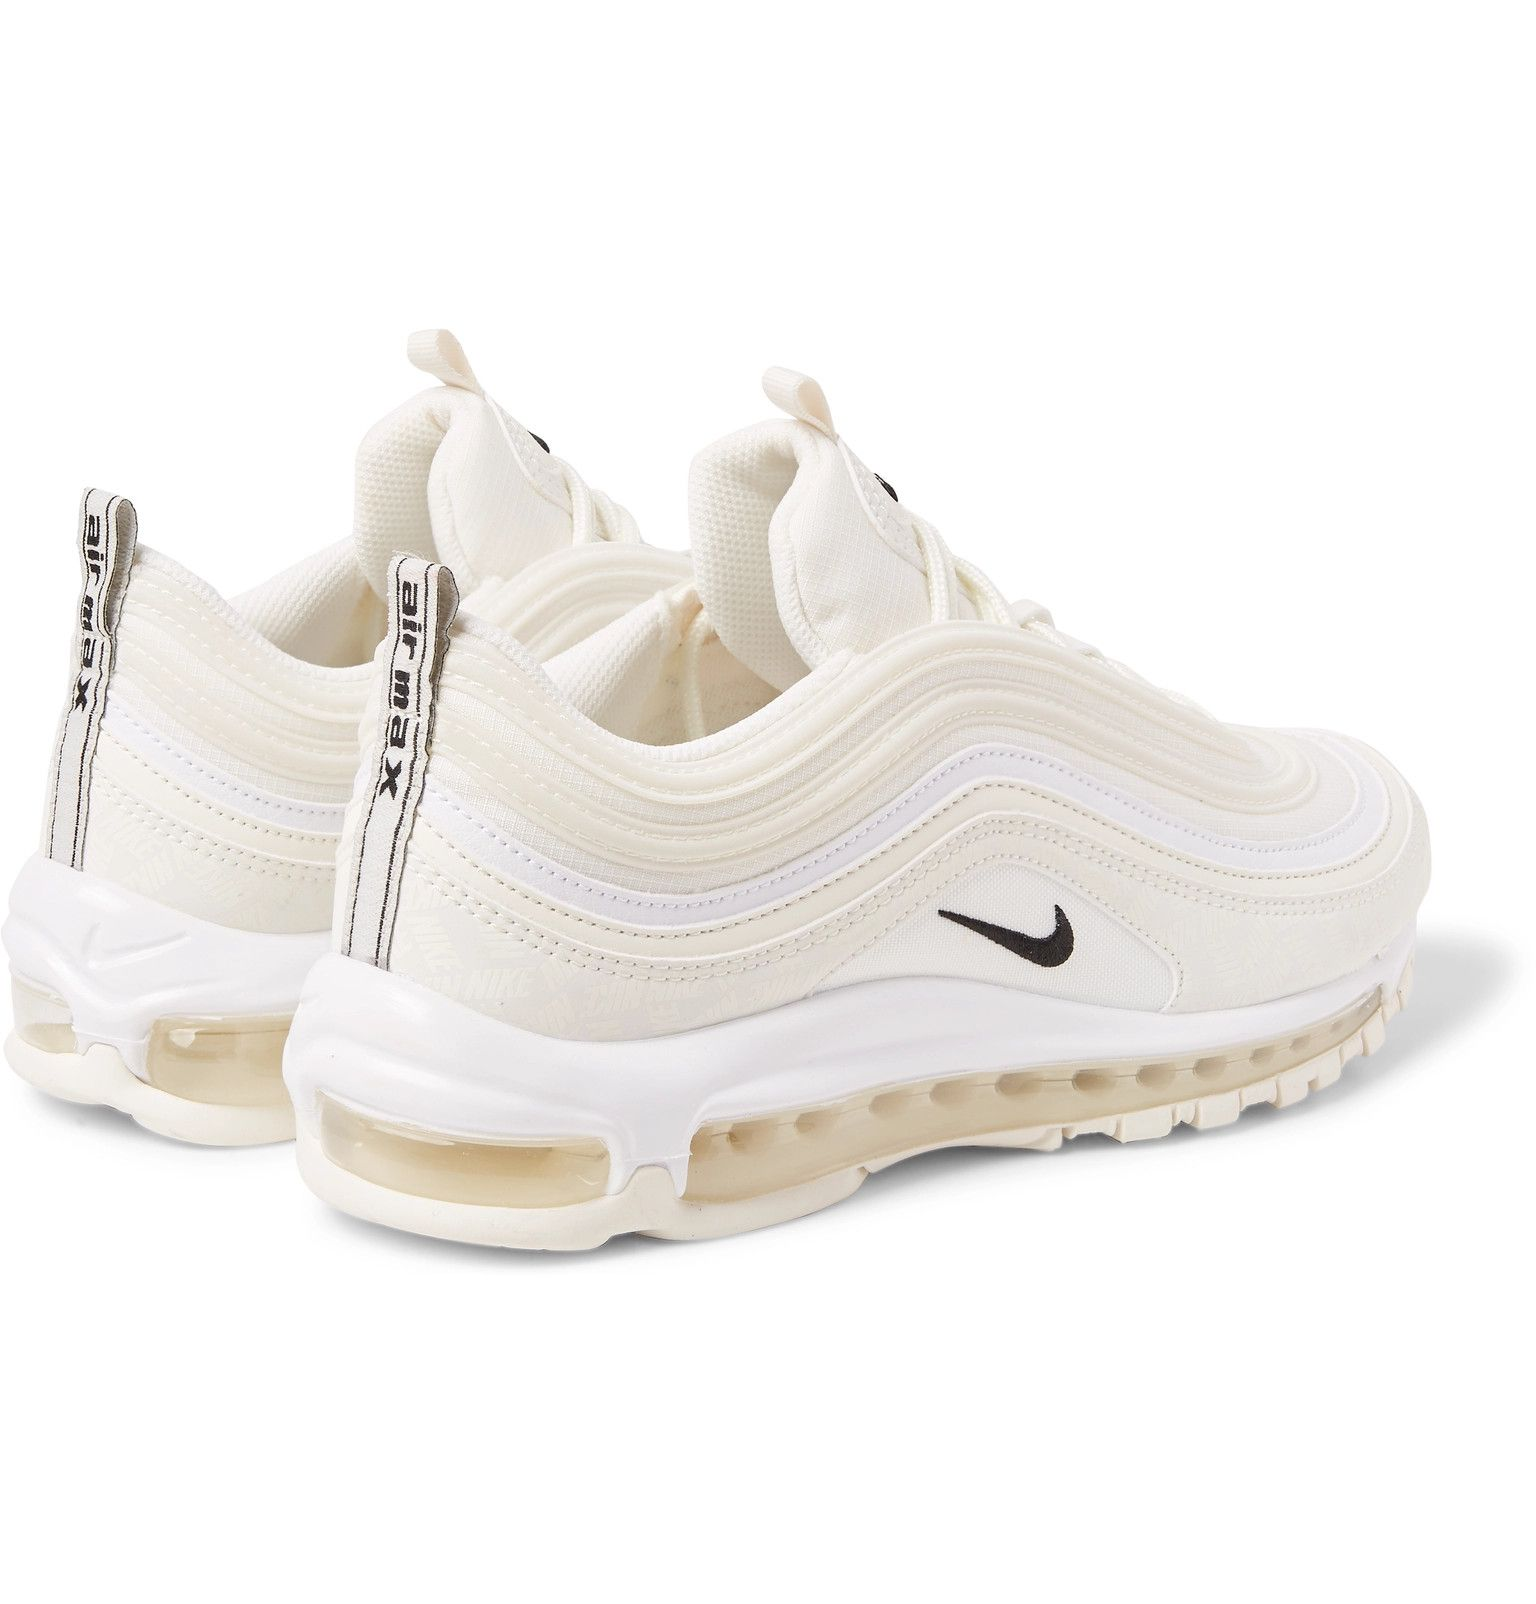 ccc6513fb9 Nike - Air Max 97 Future Tech Leather-Trimmed Ripstop Sneakers | Tags: low  tops, monochromatic, off white, cream